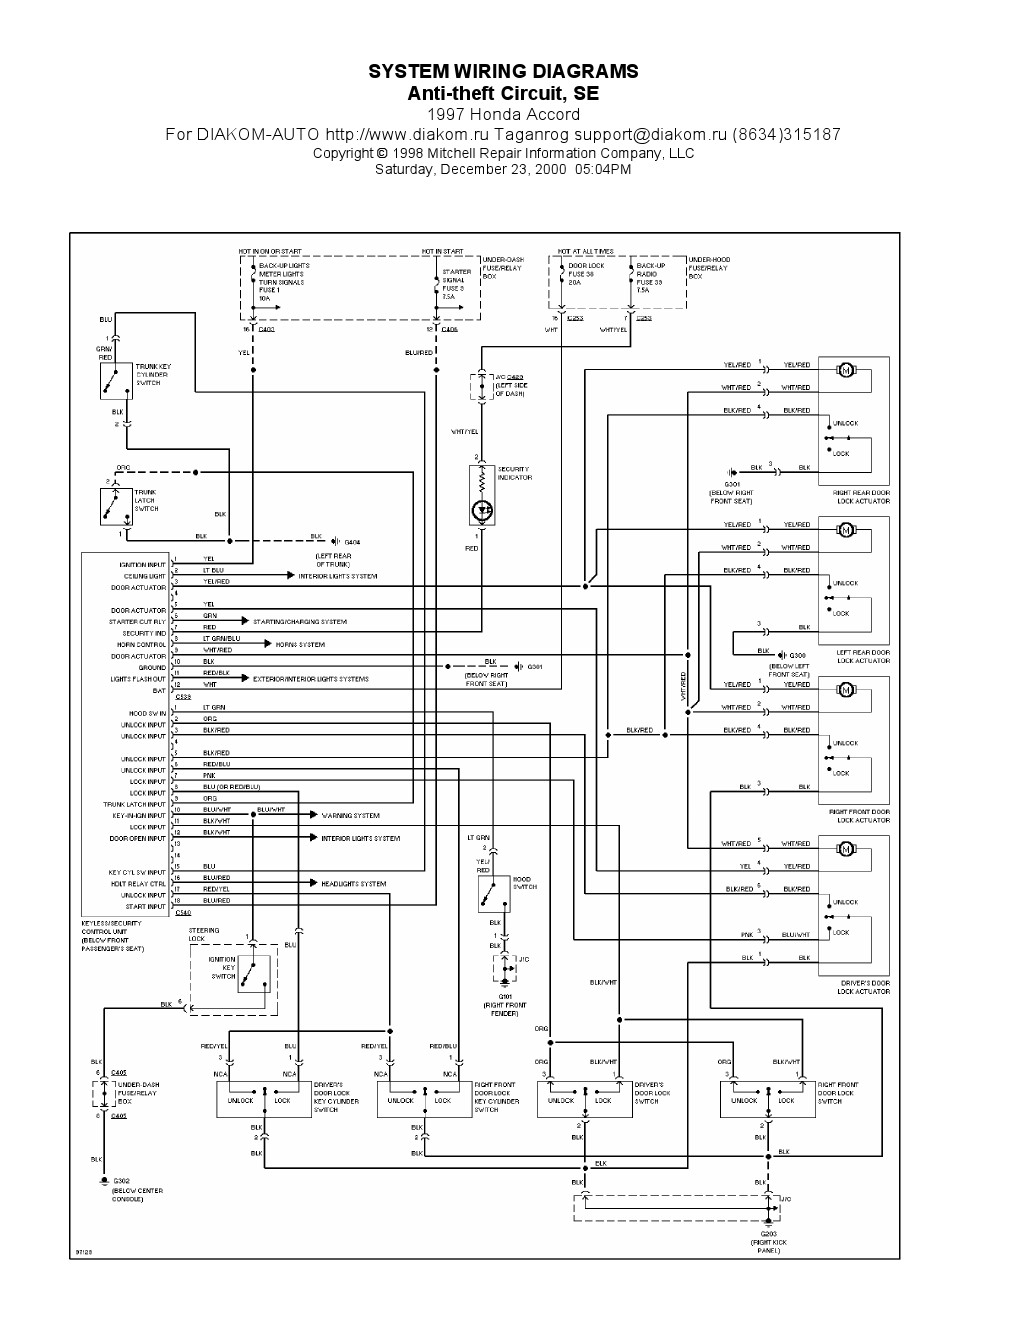 1994 Honda O2 Sensor Wiring Schematic Diagrams Civic Diagram 1997 Accord Residential Electrical Subaru Color Codes